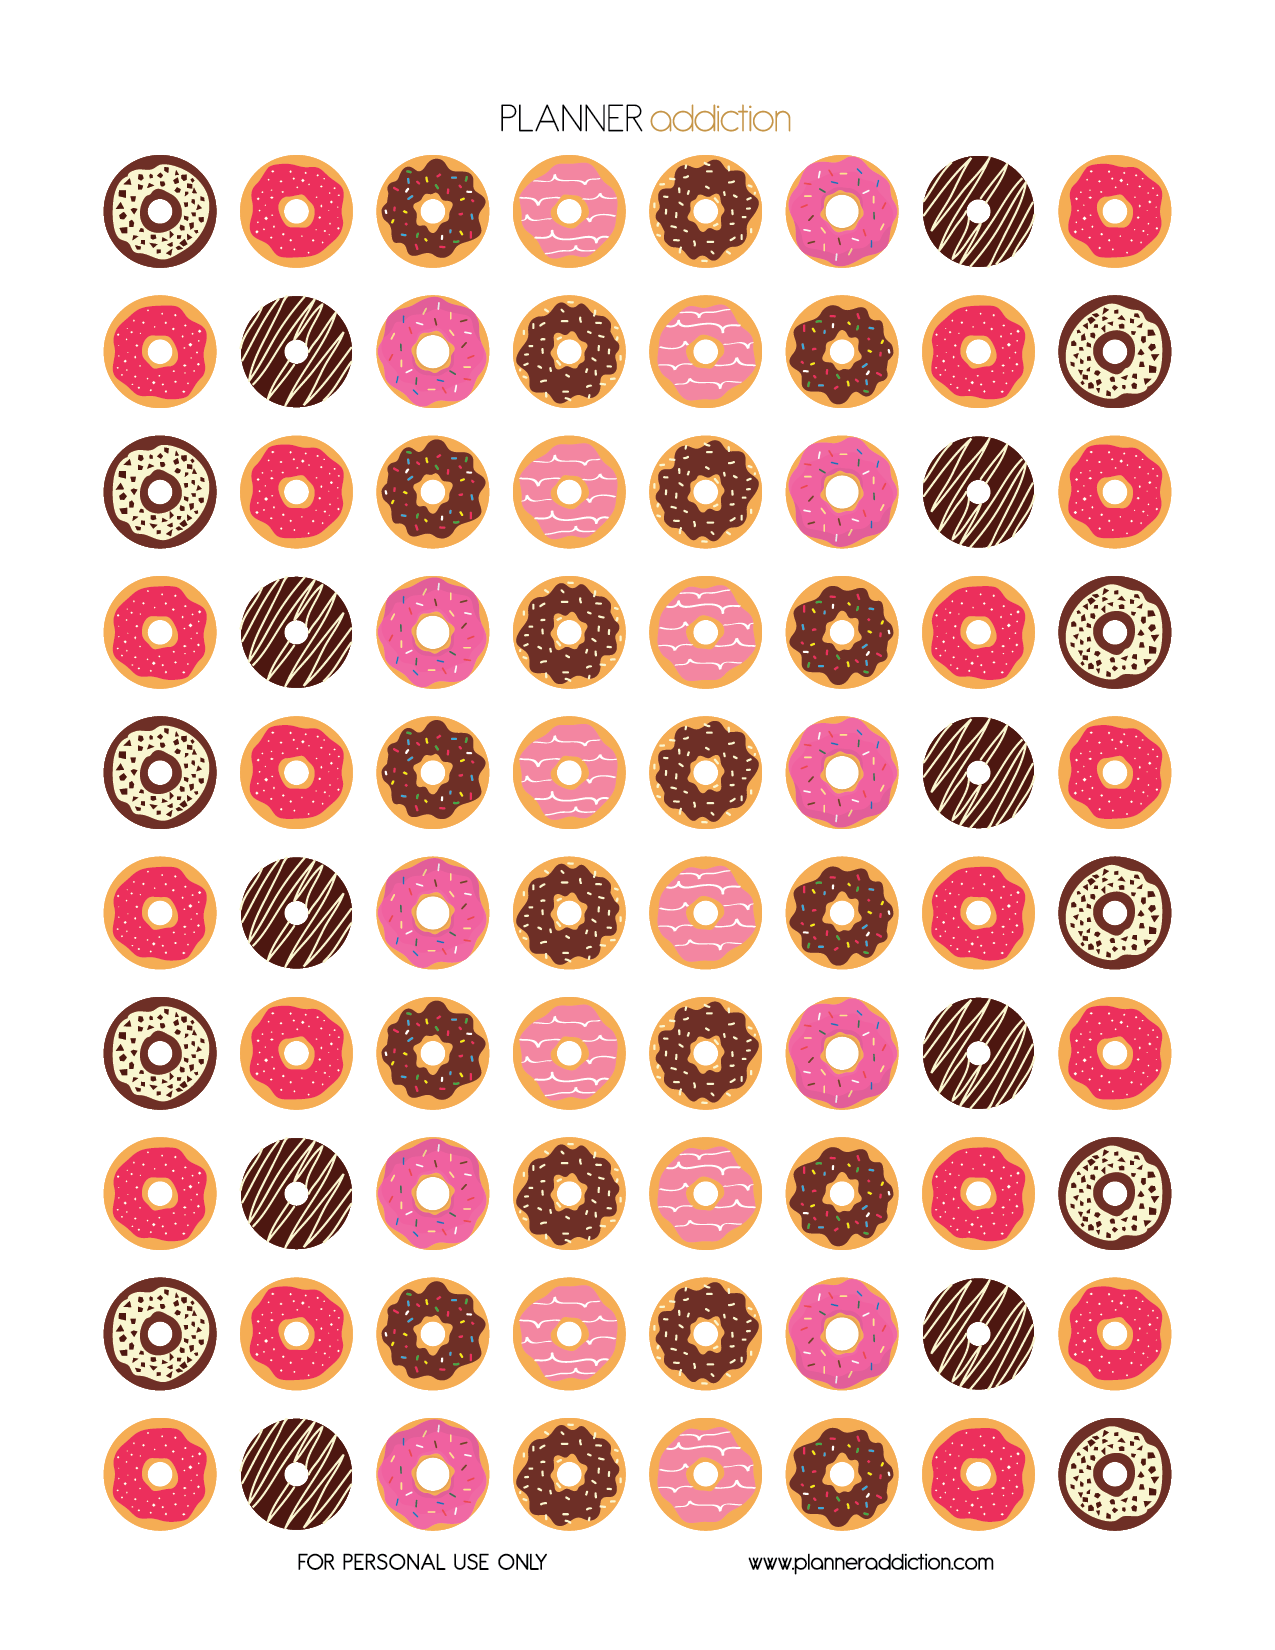 Free Printable Planner Stickers - Donuts | Planner | Pinterest ...